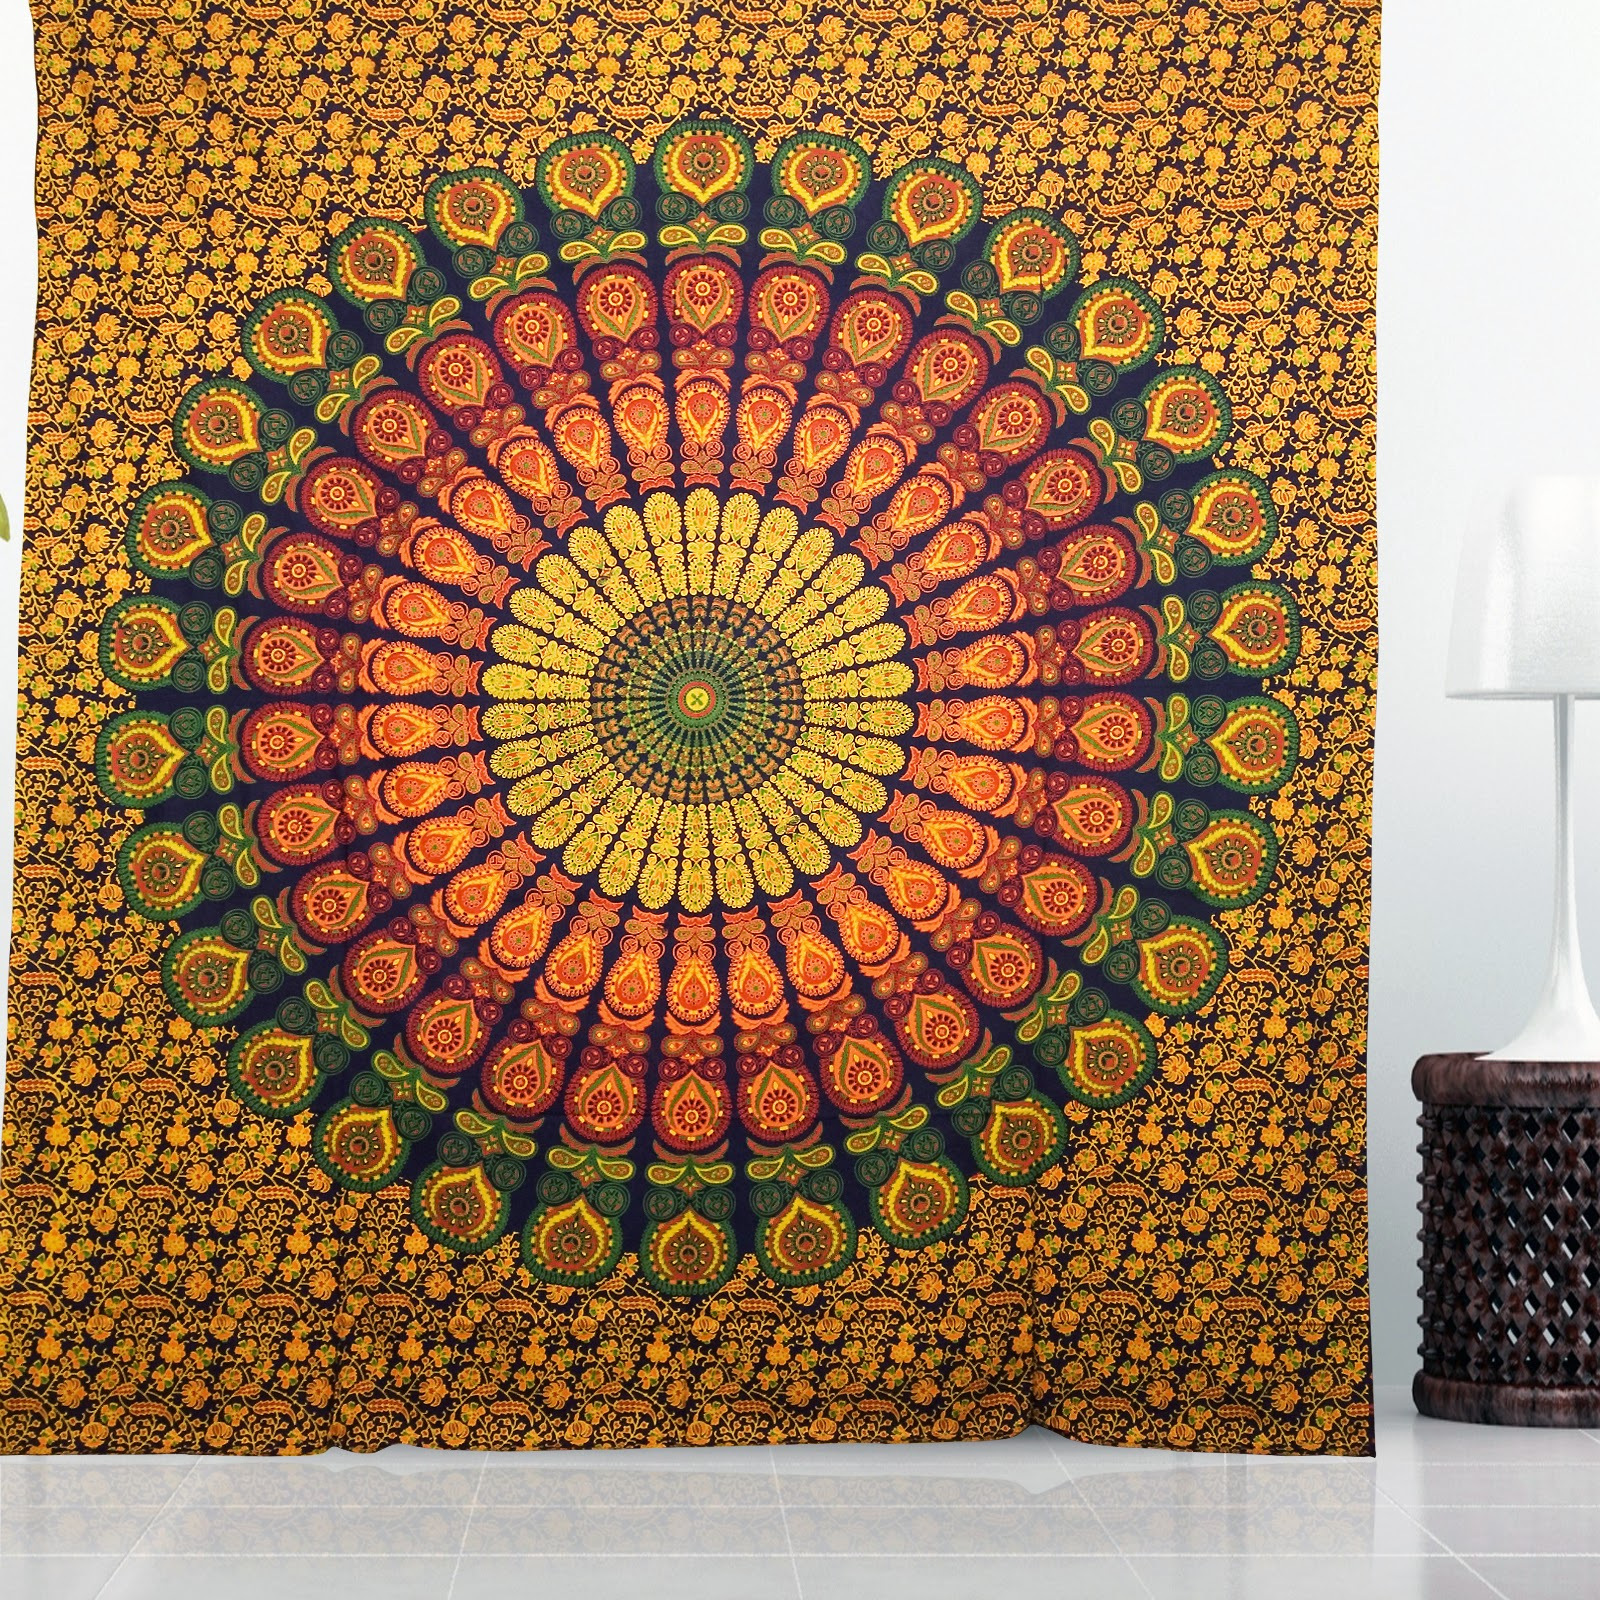 Hippie Tapestries Mandala Tapestries Queen Boho